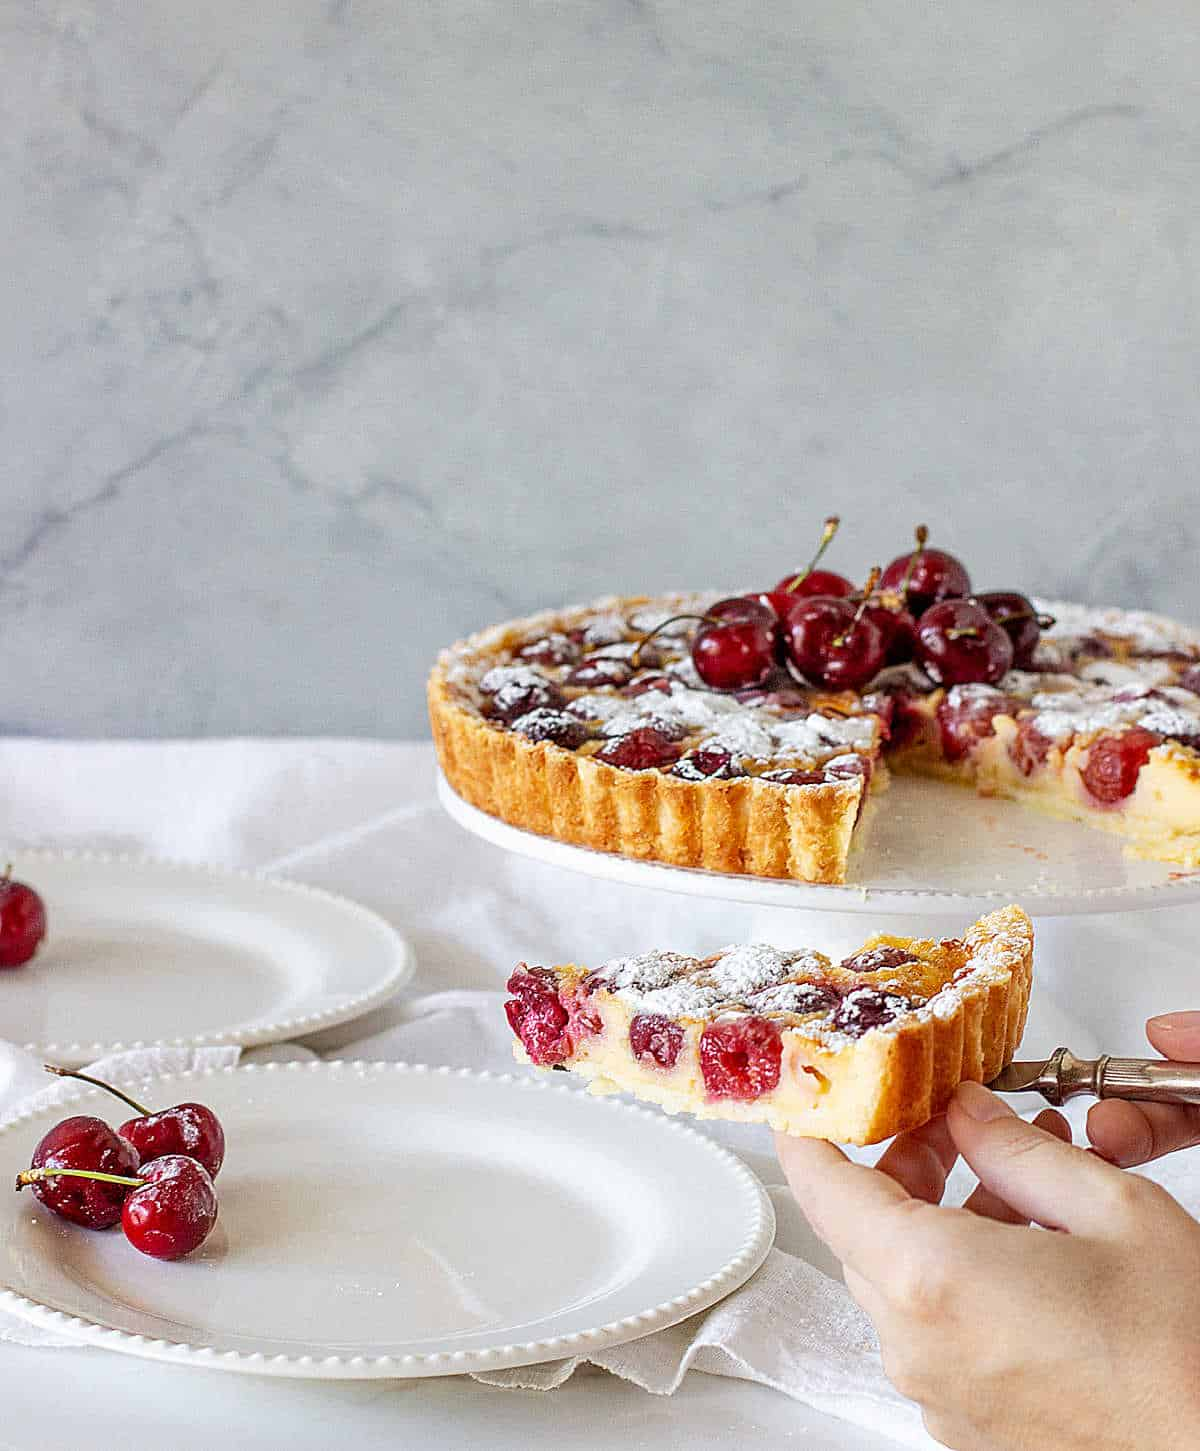 Serving a slice of cherry pie on white plate, tart on cake stand, white background